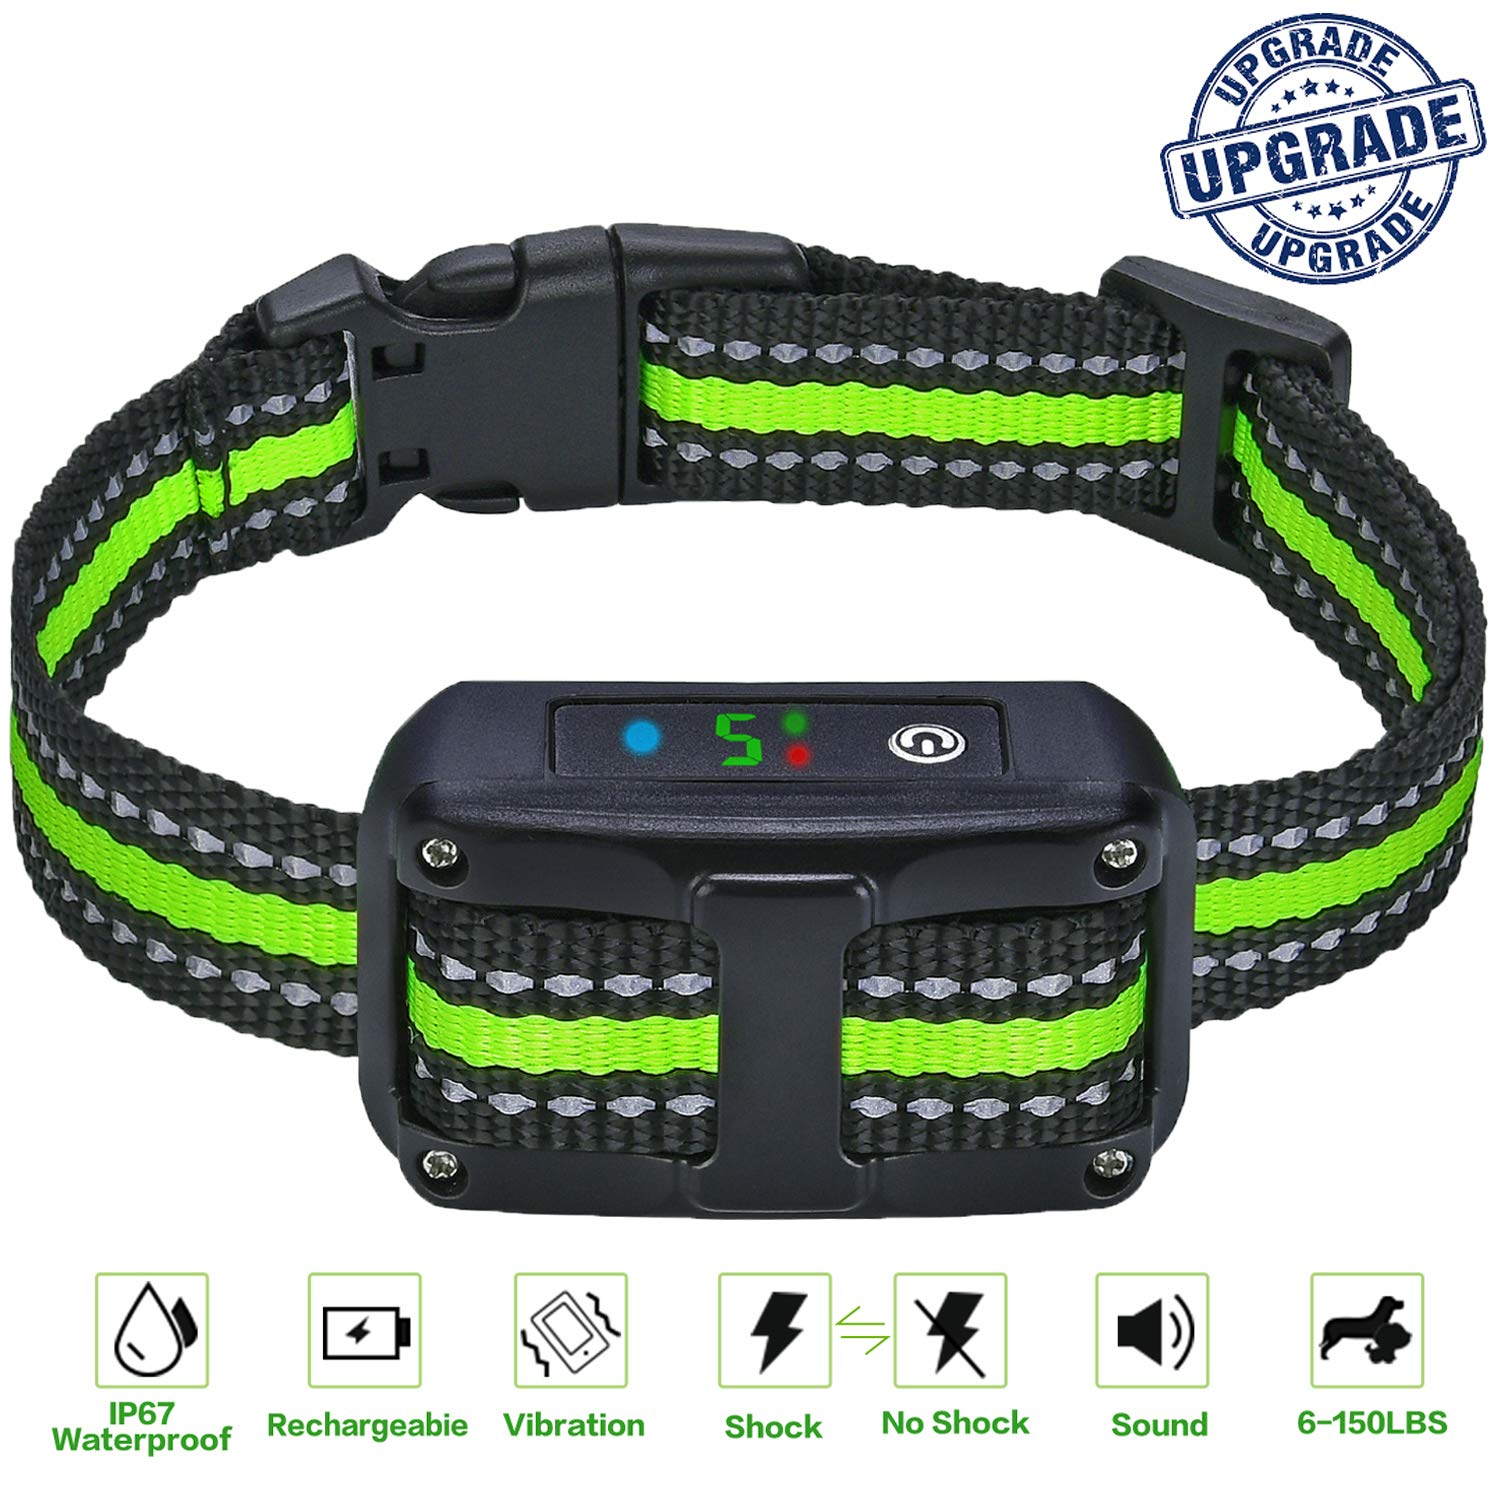 [Newest 2019] Dog Bark Control Collar, Dual Anti-Barking Modes, No Barking Control Dog Shock Collar, Suitable for Small and Medium Dogs